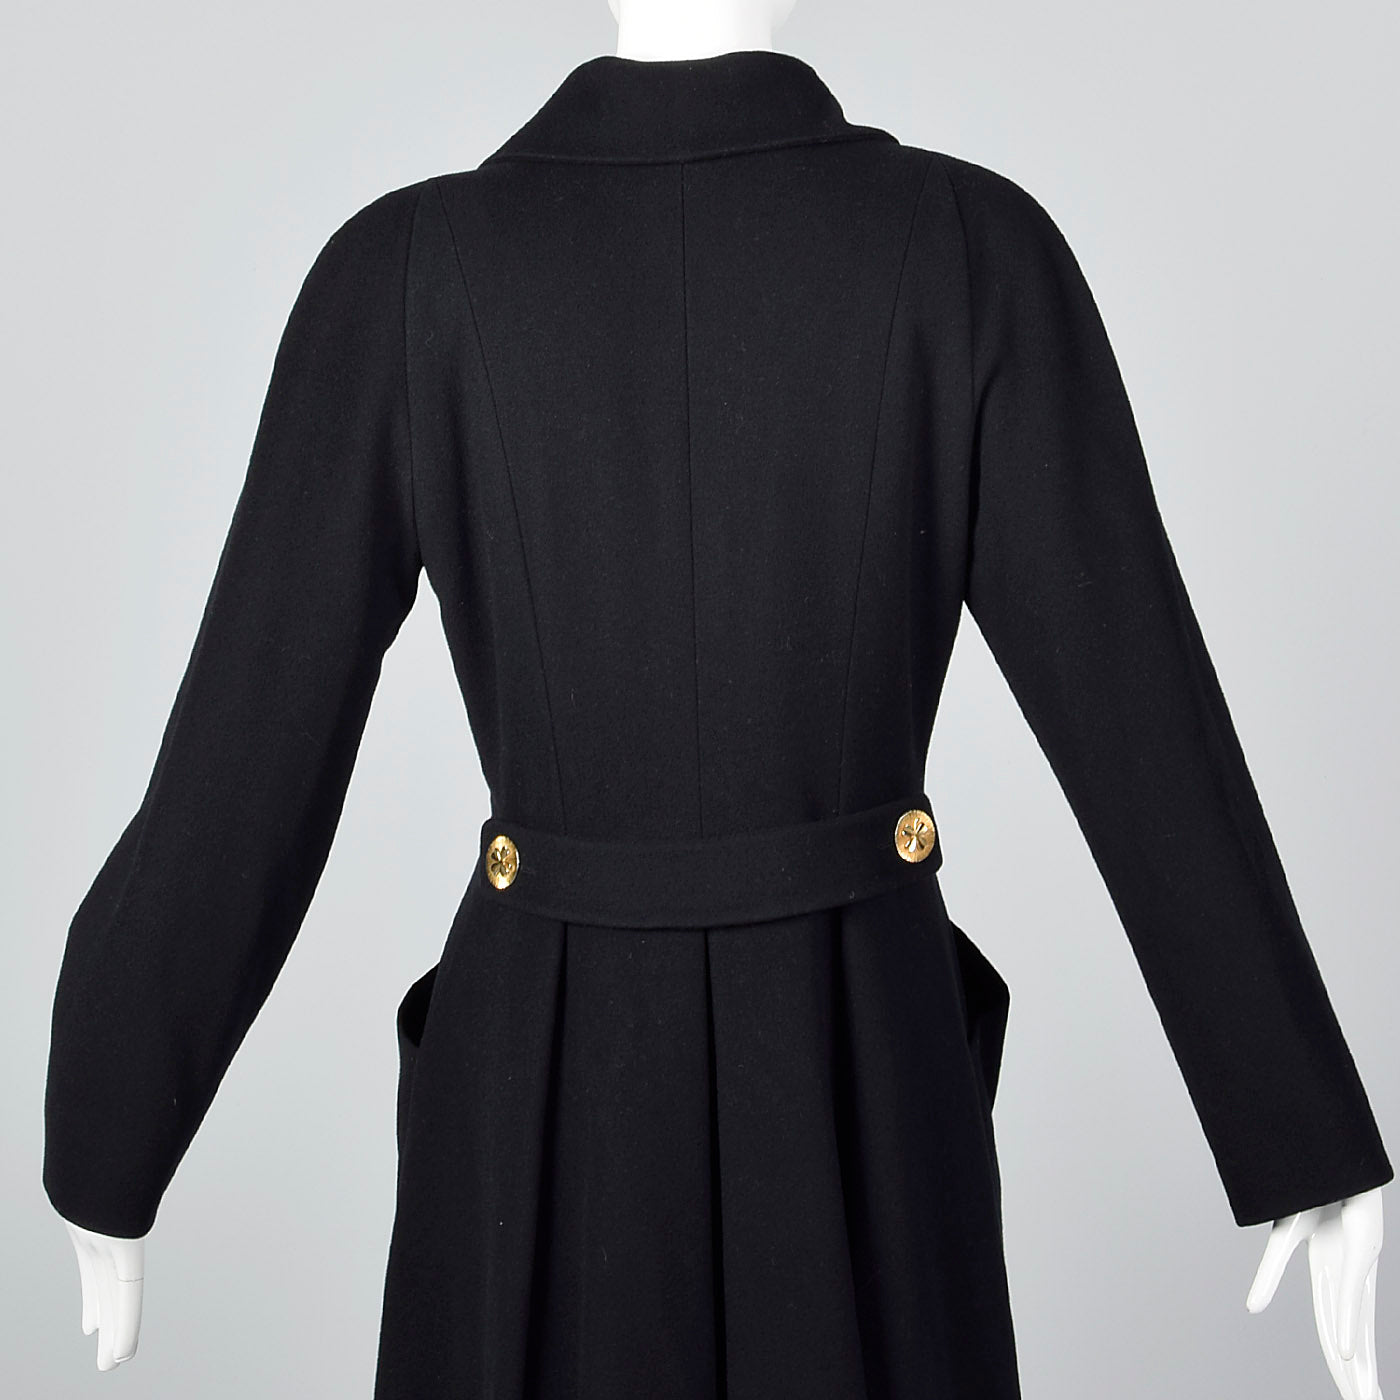 Extraordinary Chanel Black Cashmere Princess Coat with Clover Buttons